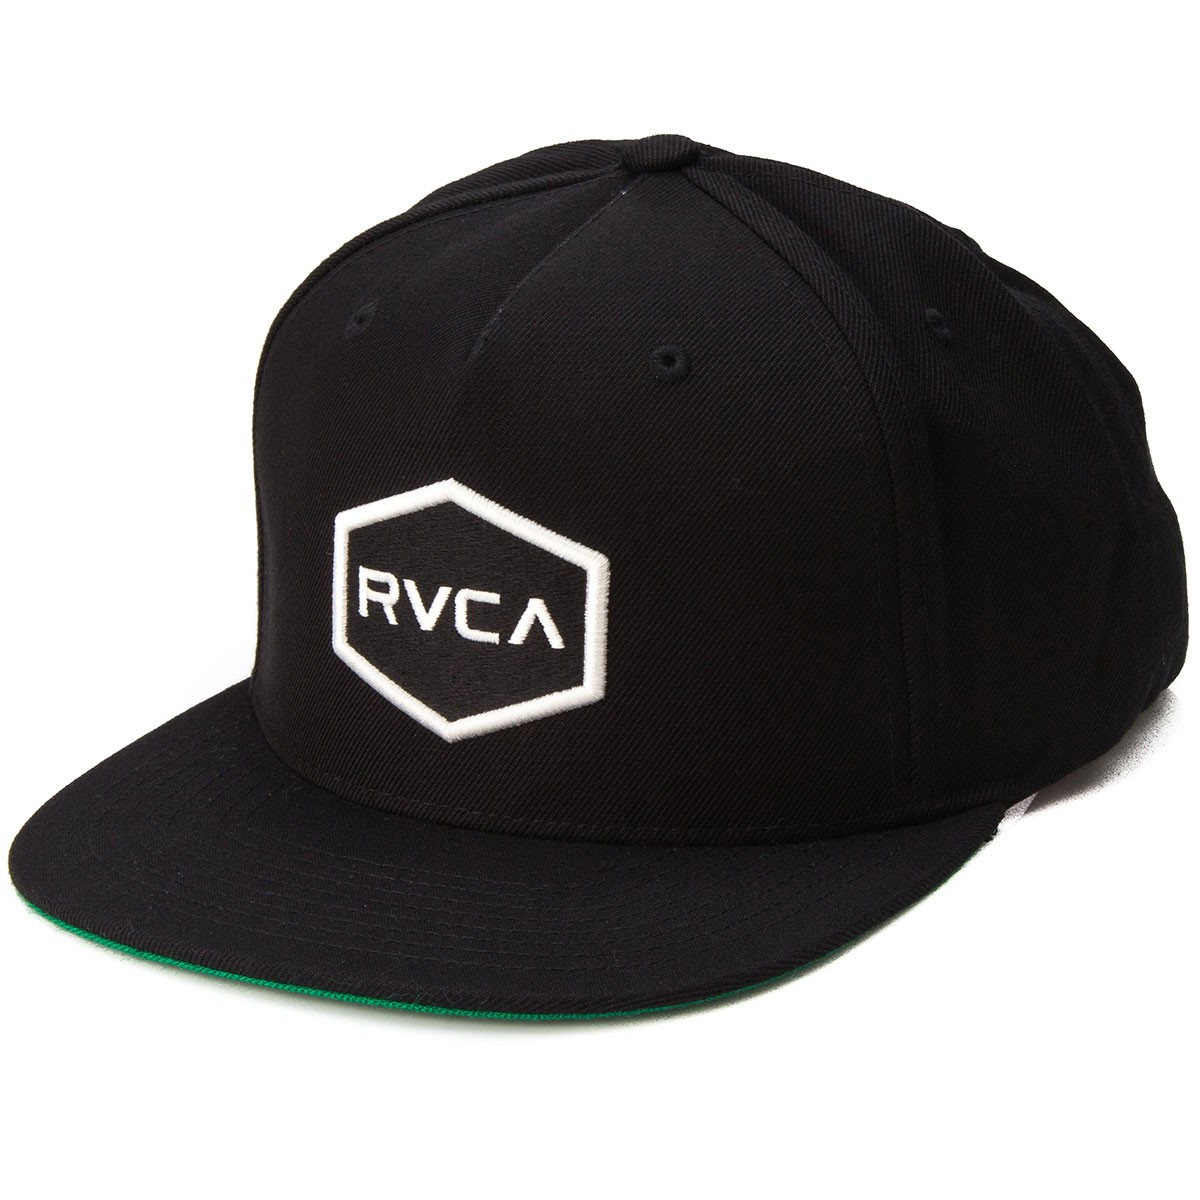 29fecdcc611 RVCA Commonwealth Snapback Hat - Black White